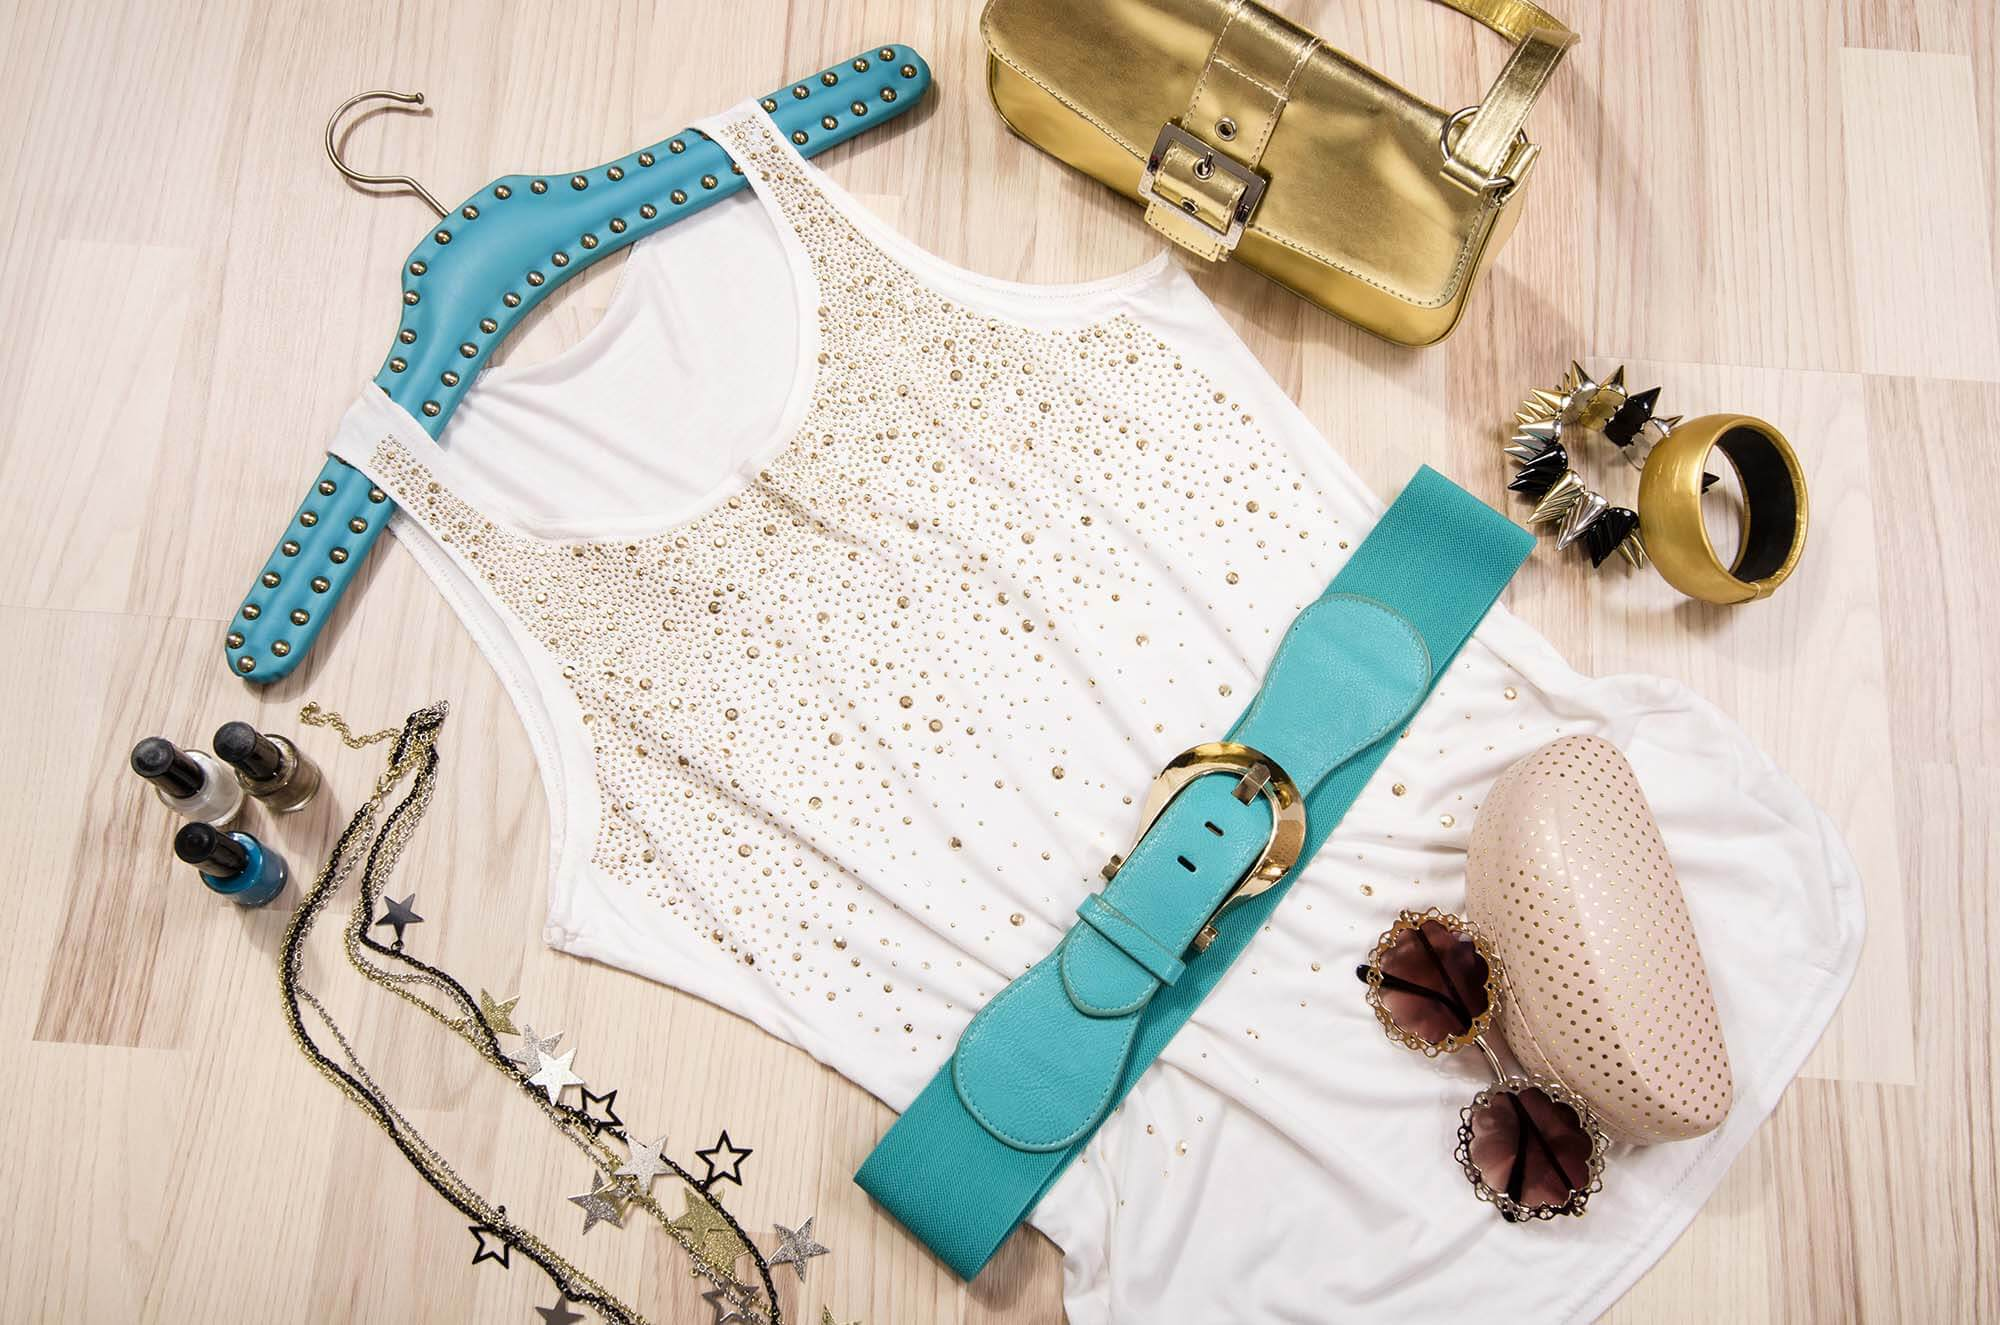 Bling ideas for clothes